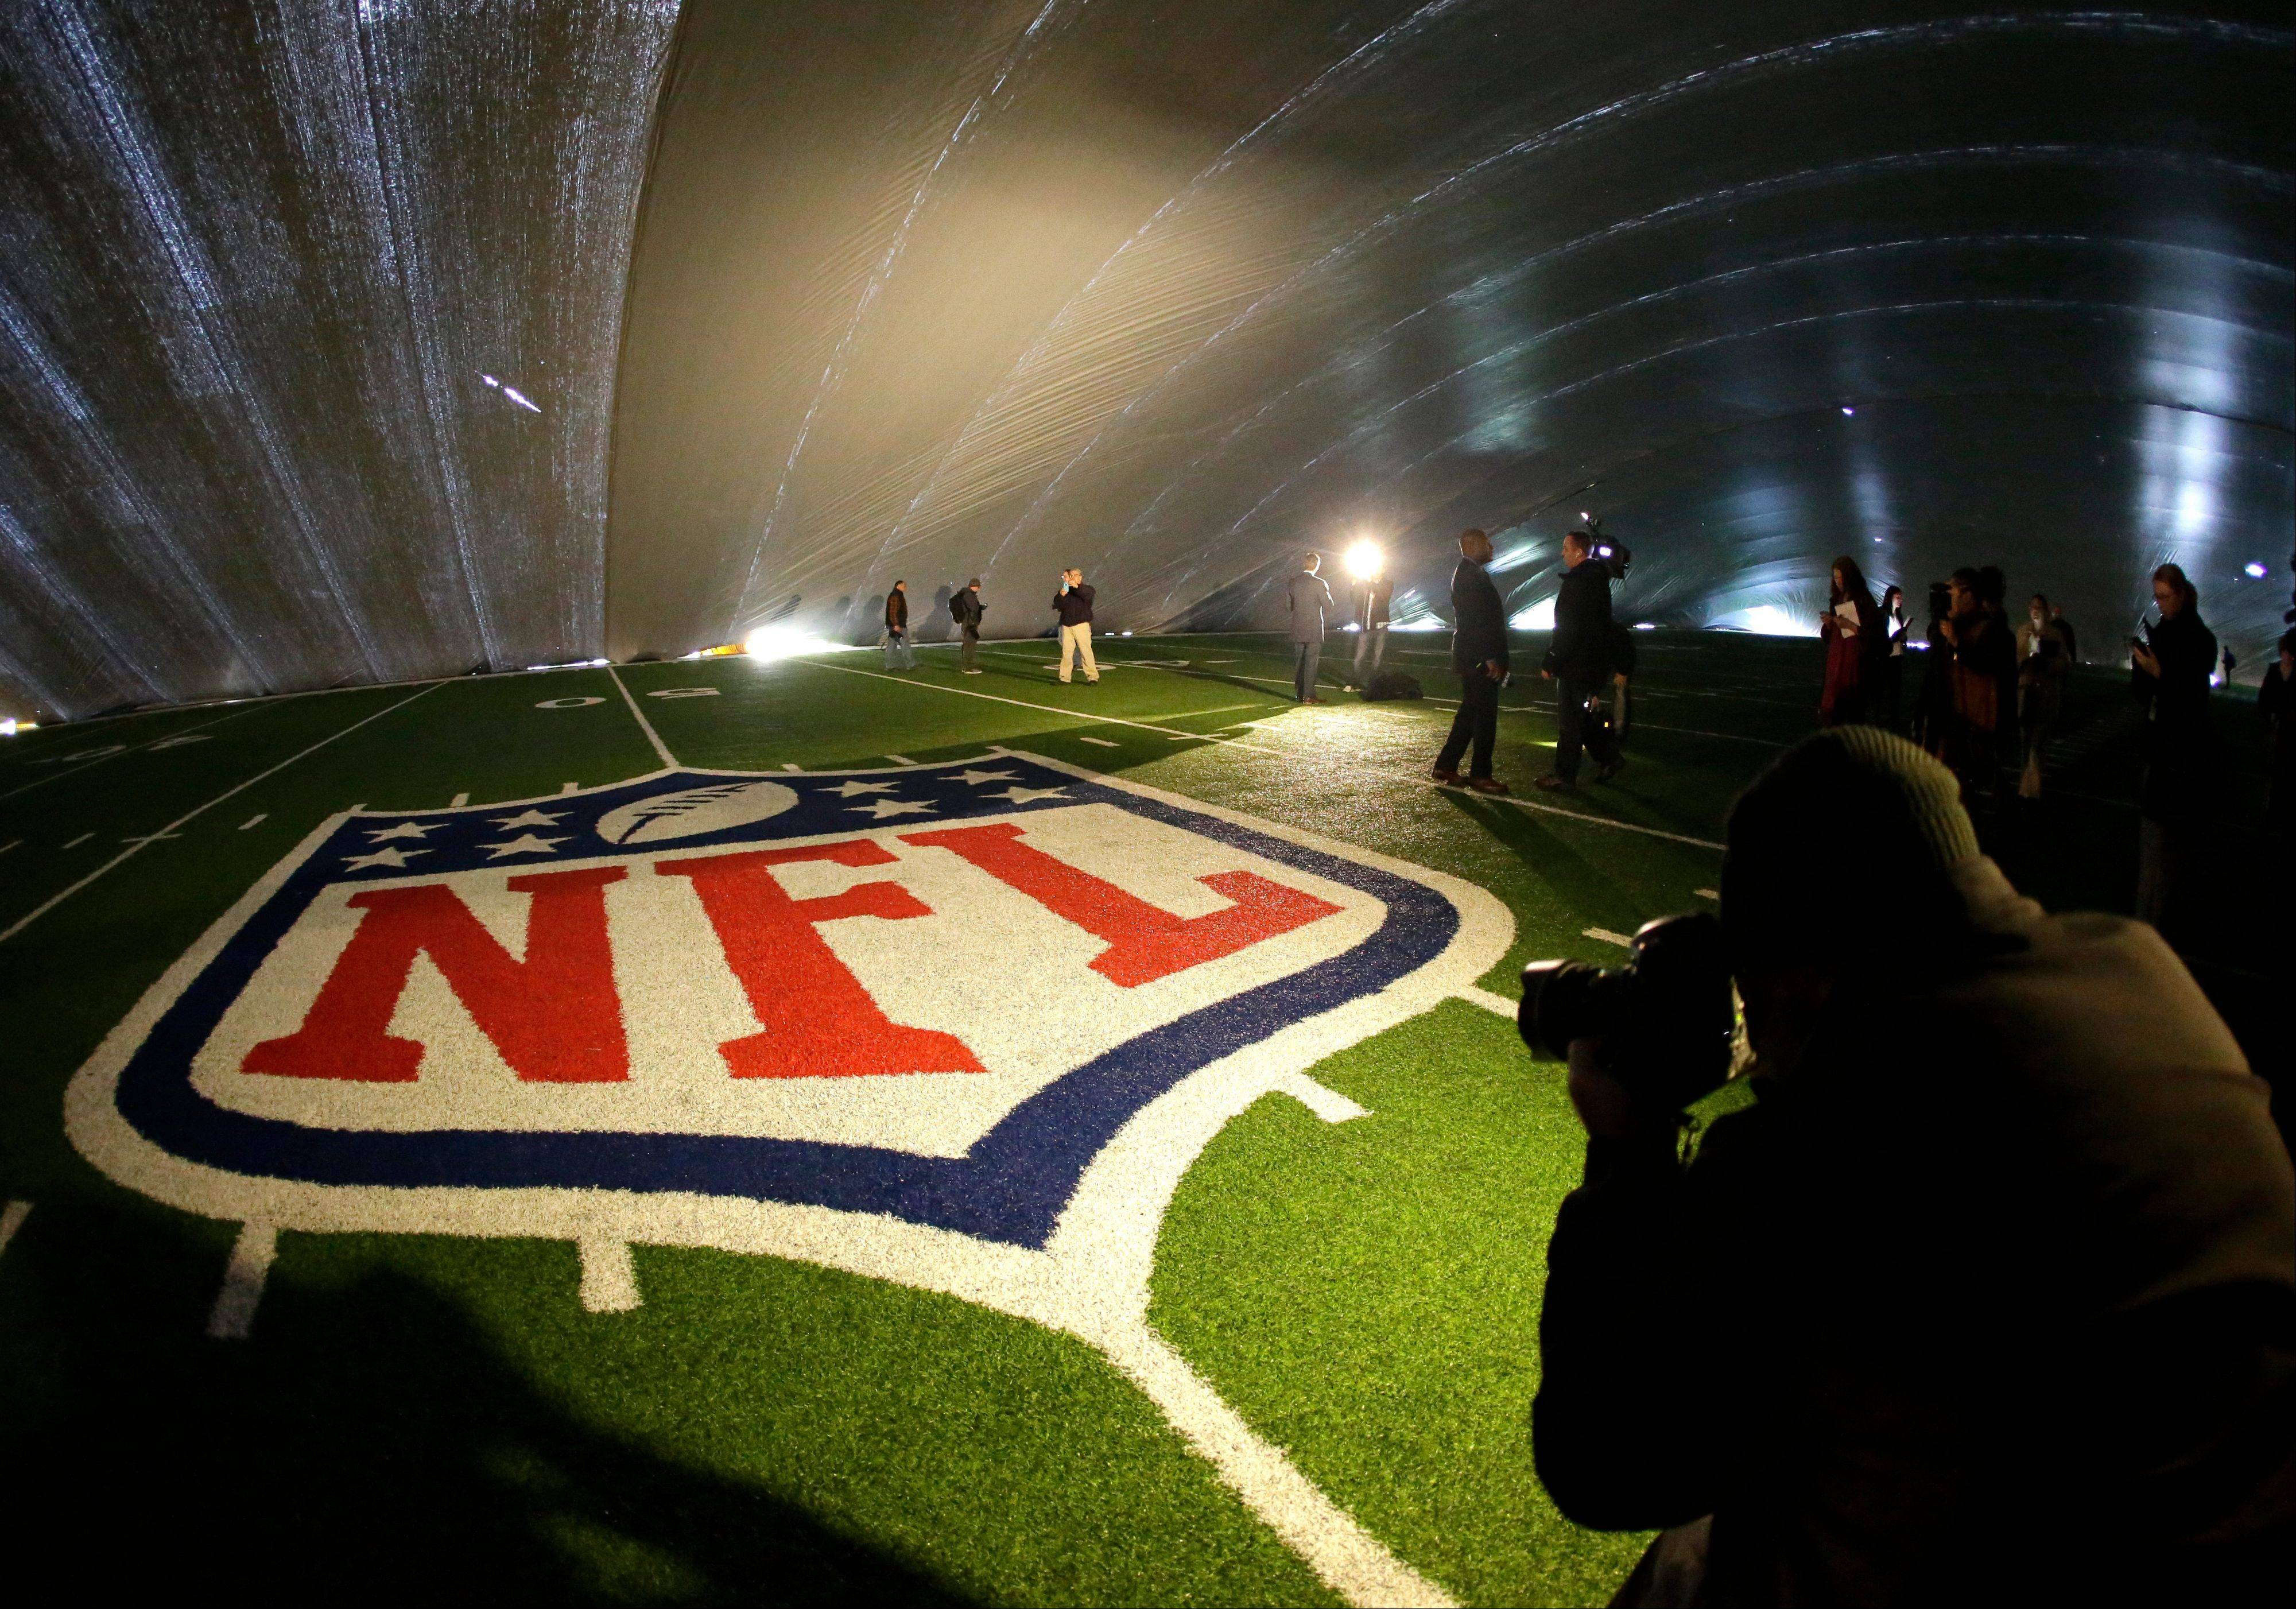 The NFL logo at midfield of MetLife Stadium is illuminated by lights on television reporters� videocameras as members of the media are given a tour under a tarp used by crews to keep the turf dry ahead of Super Bowl XLVIII in East Rutherford, N.J.